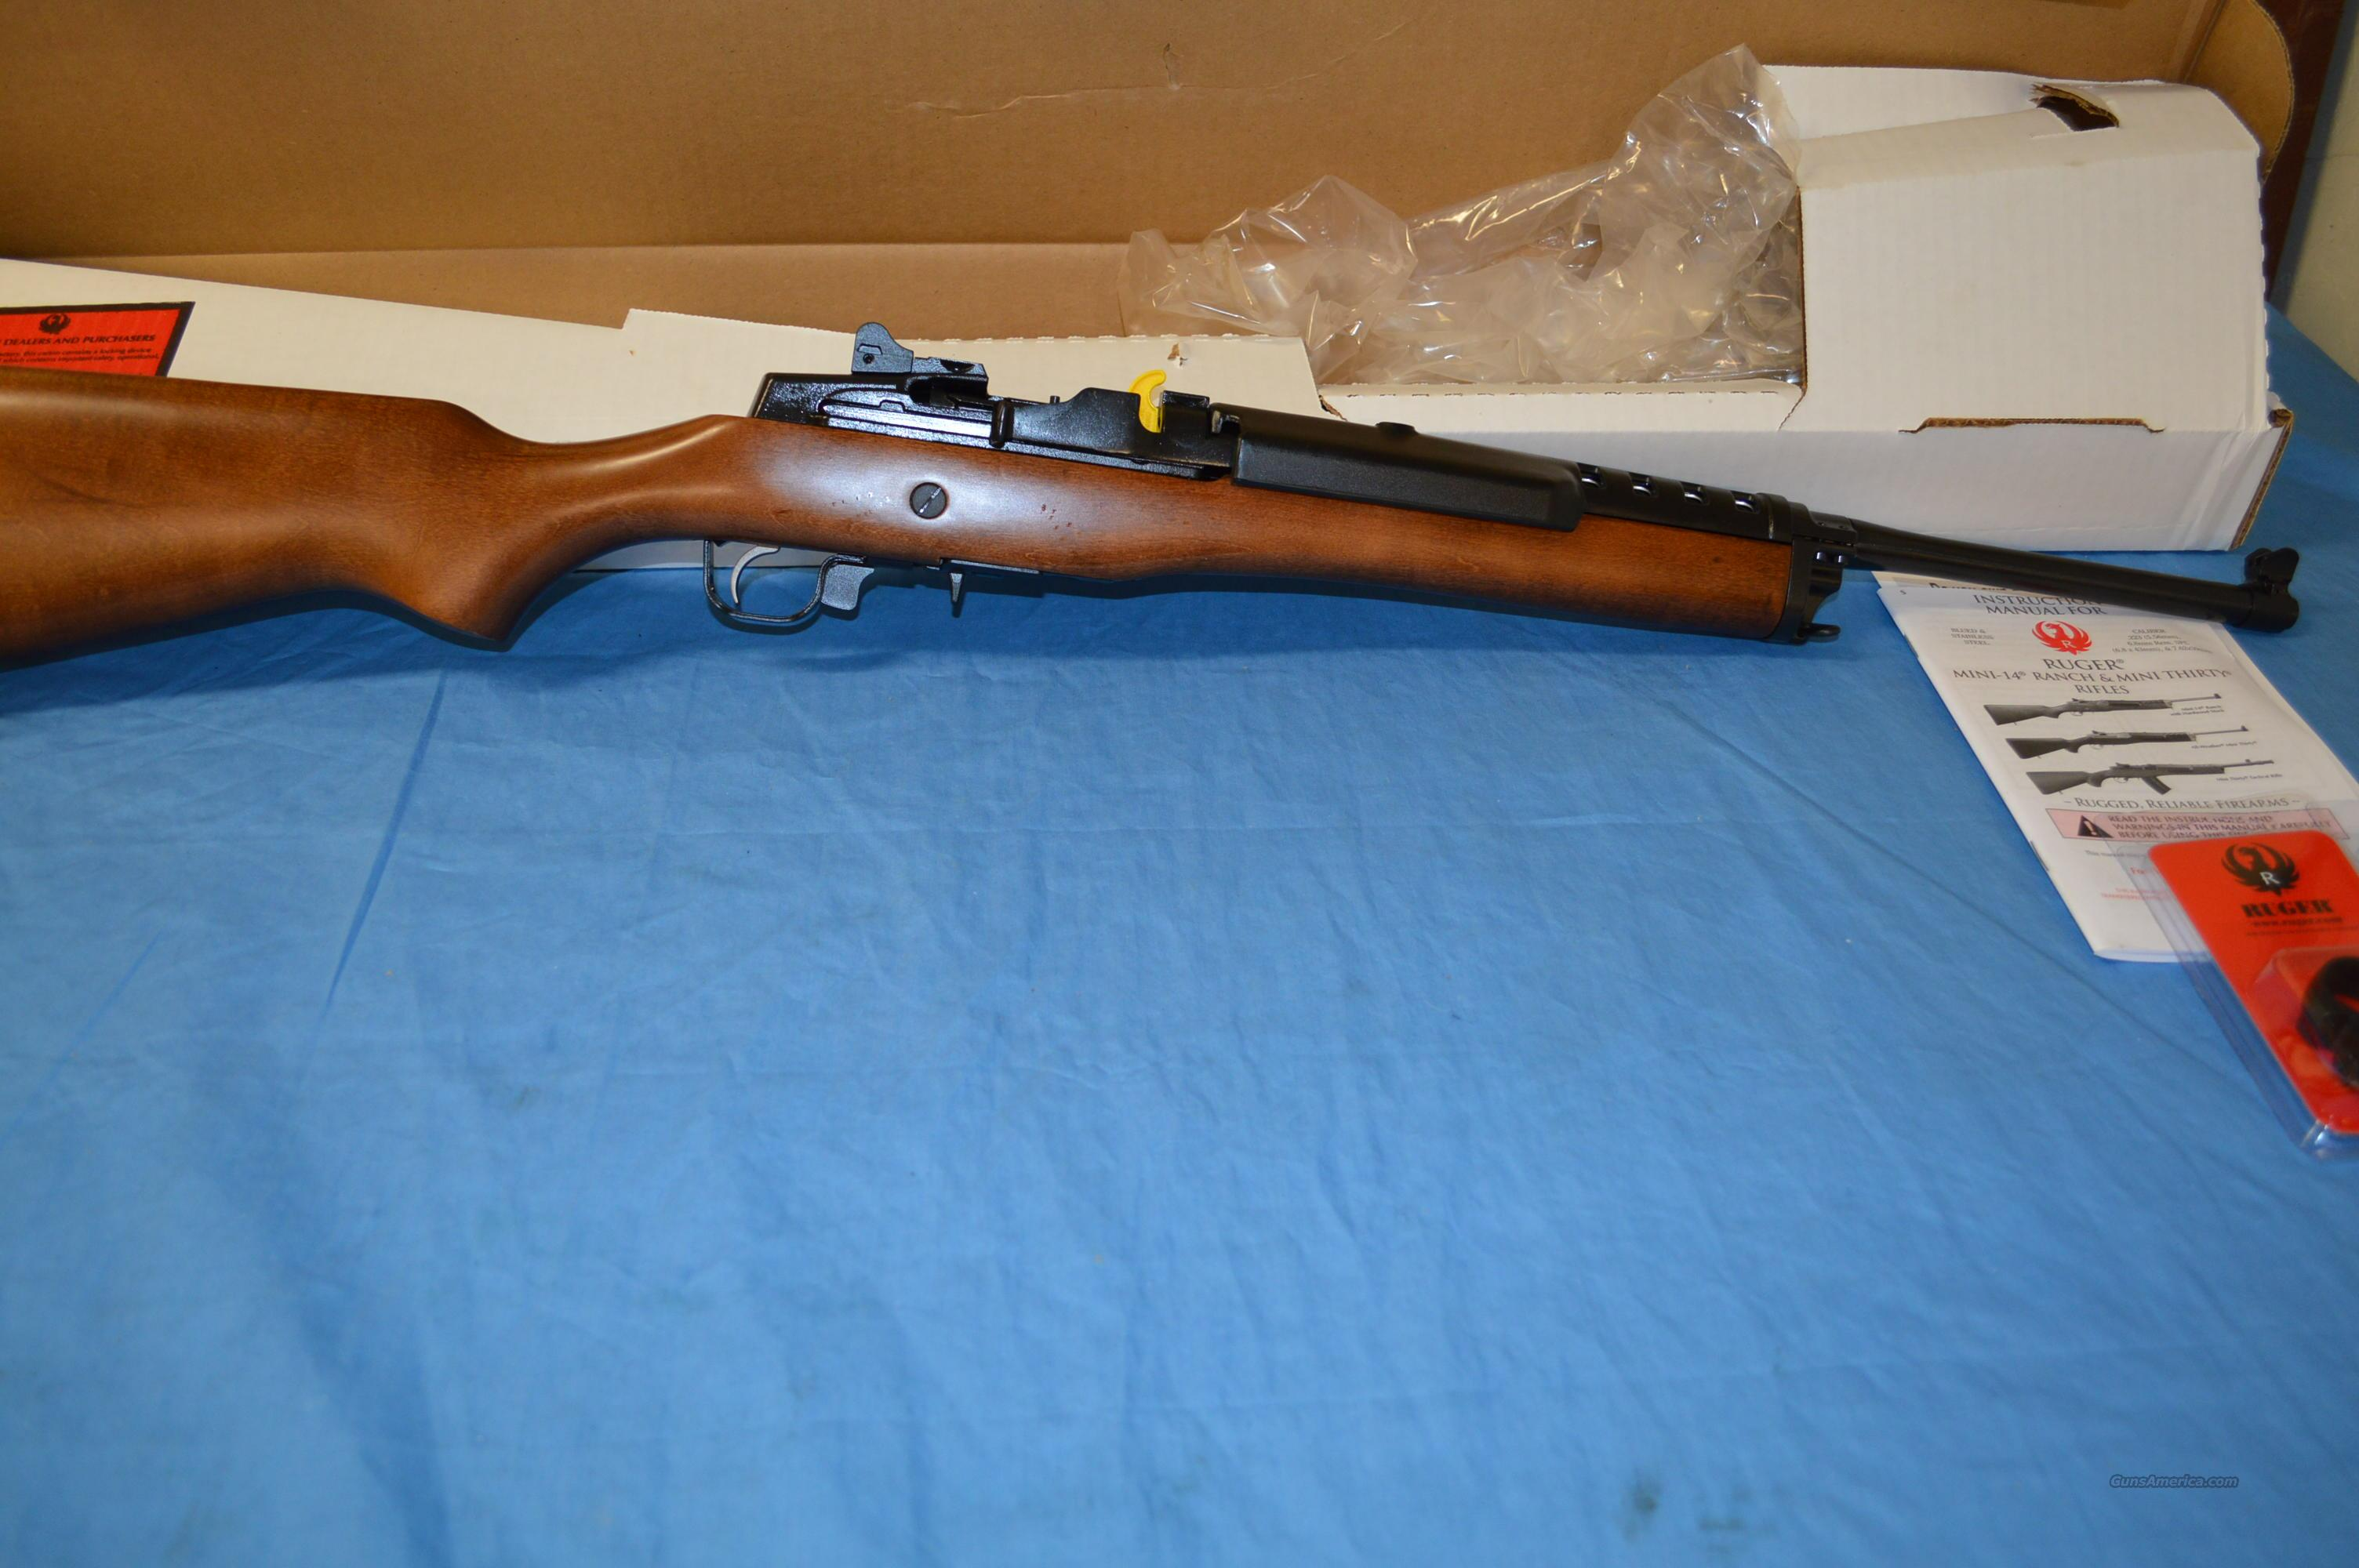 RUGER MINI 14 RANCH  Guns > Rifles > Ruger Rifles > Mini-14 Type